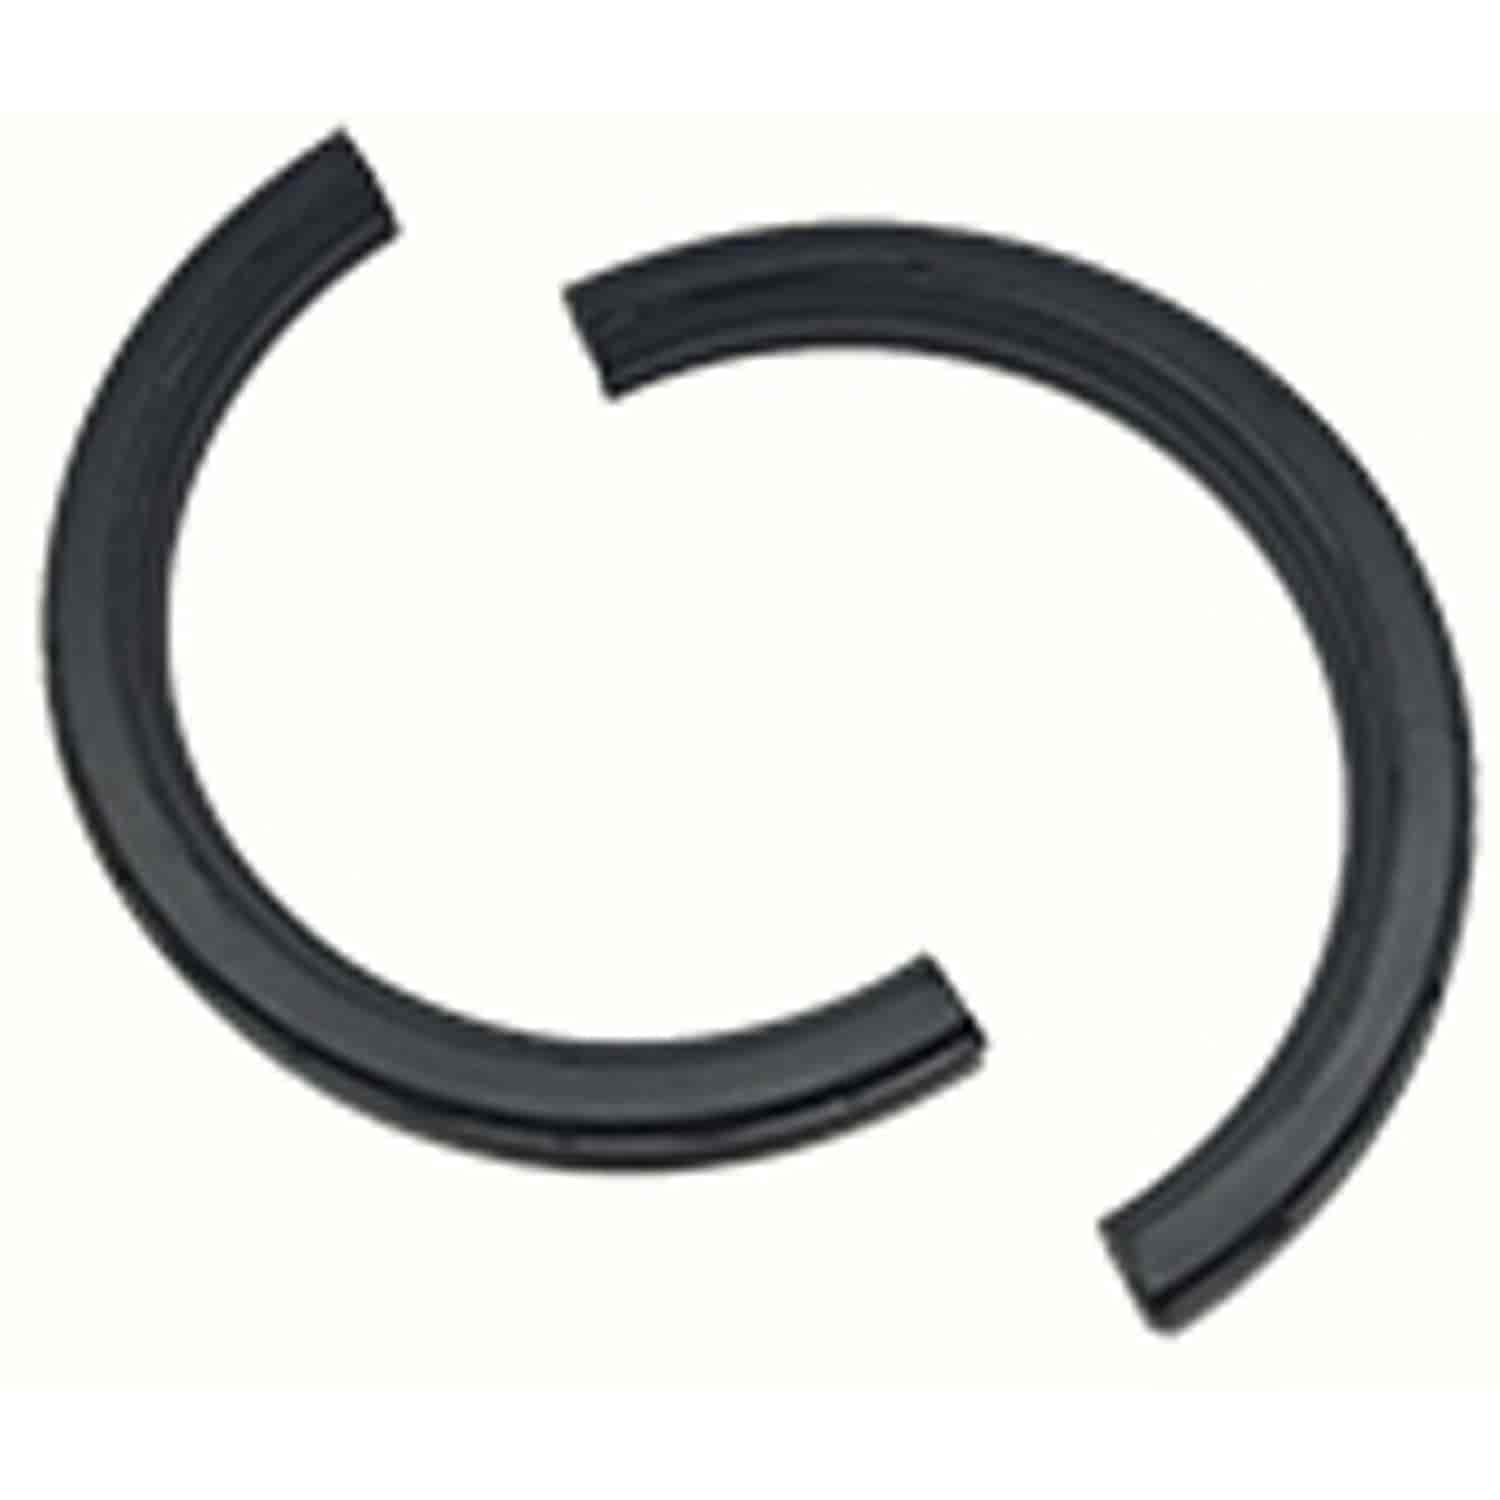 Sce Gaskets 17904 Rear Main Seal Small Block Oldsmobile 307 350 403 Old Rocket Engine